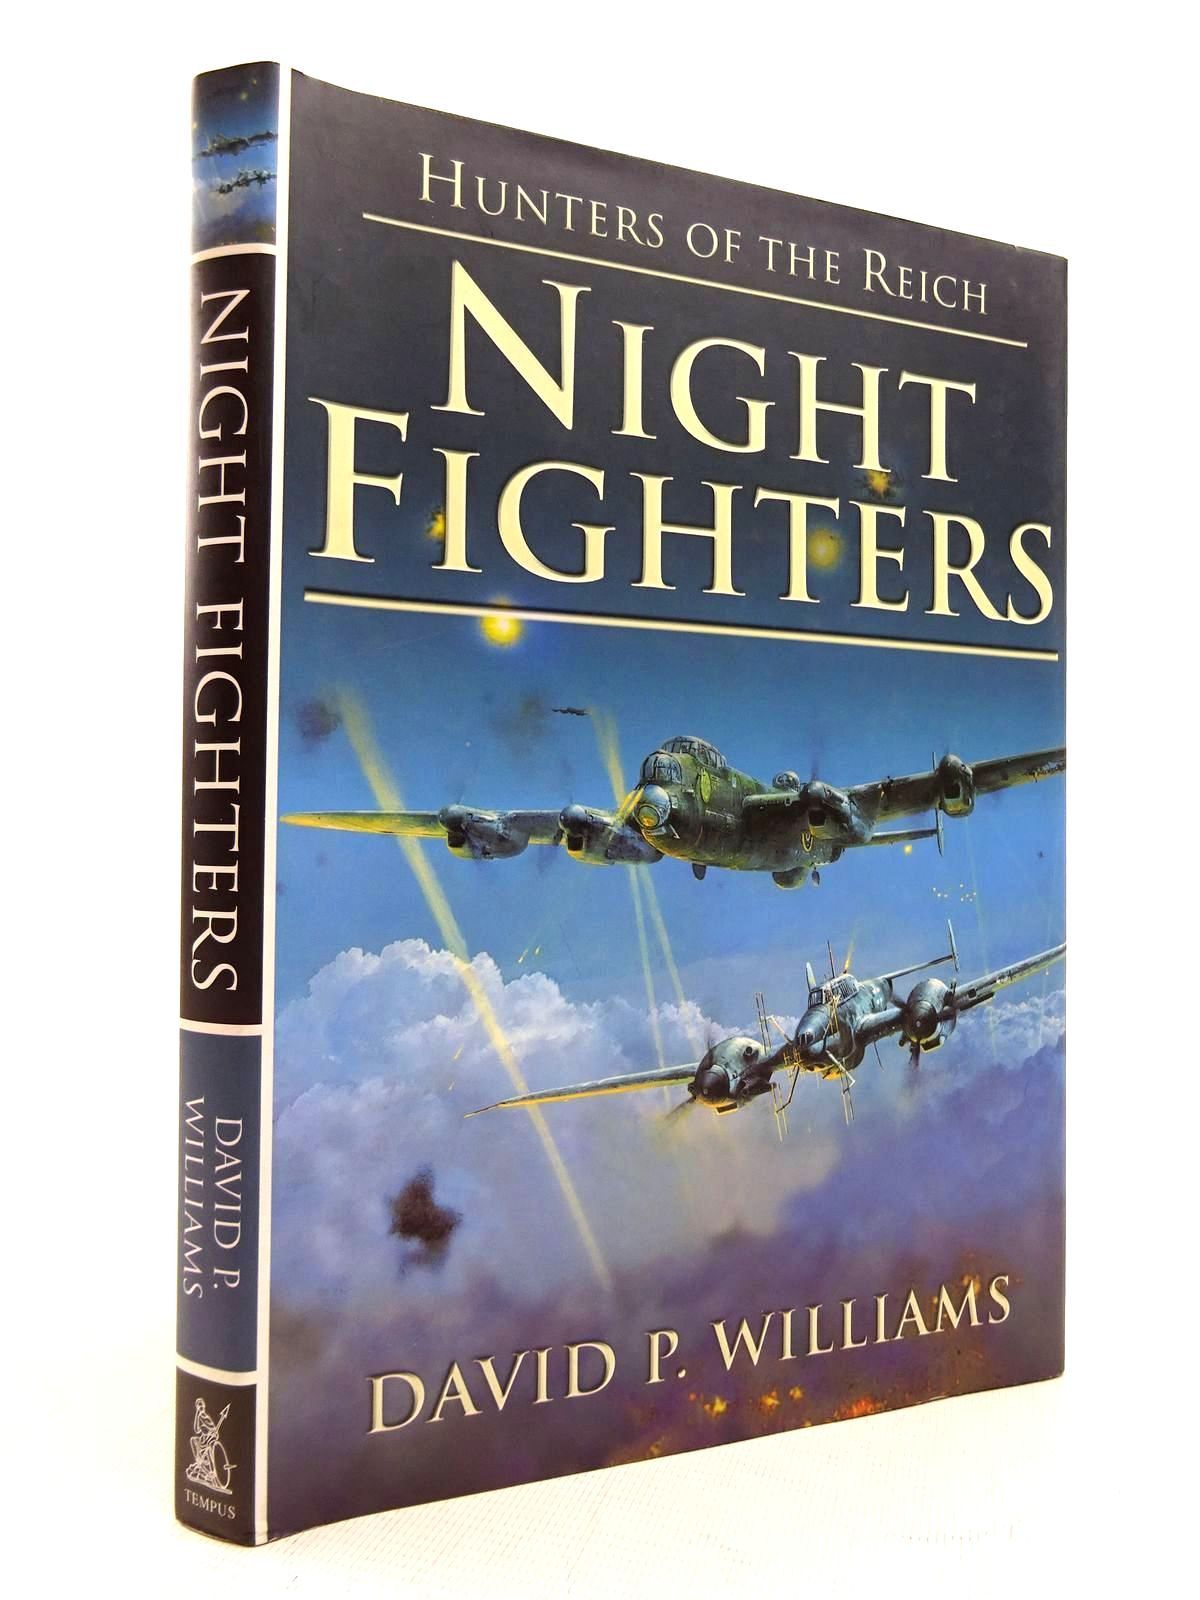 Photo of HUNTERS OF THE REICH VOL. I - NIGHT FIGHTERS written by Williams, David P. published by Tempus (STOCK CODE: 1816093)  for sale by Stella & Rose's Books